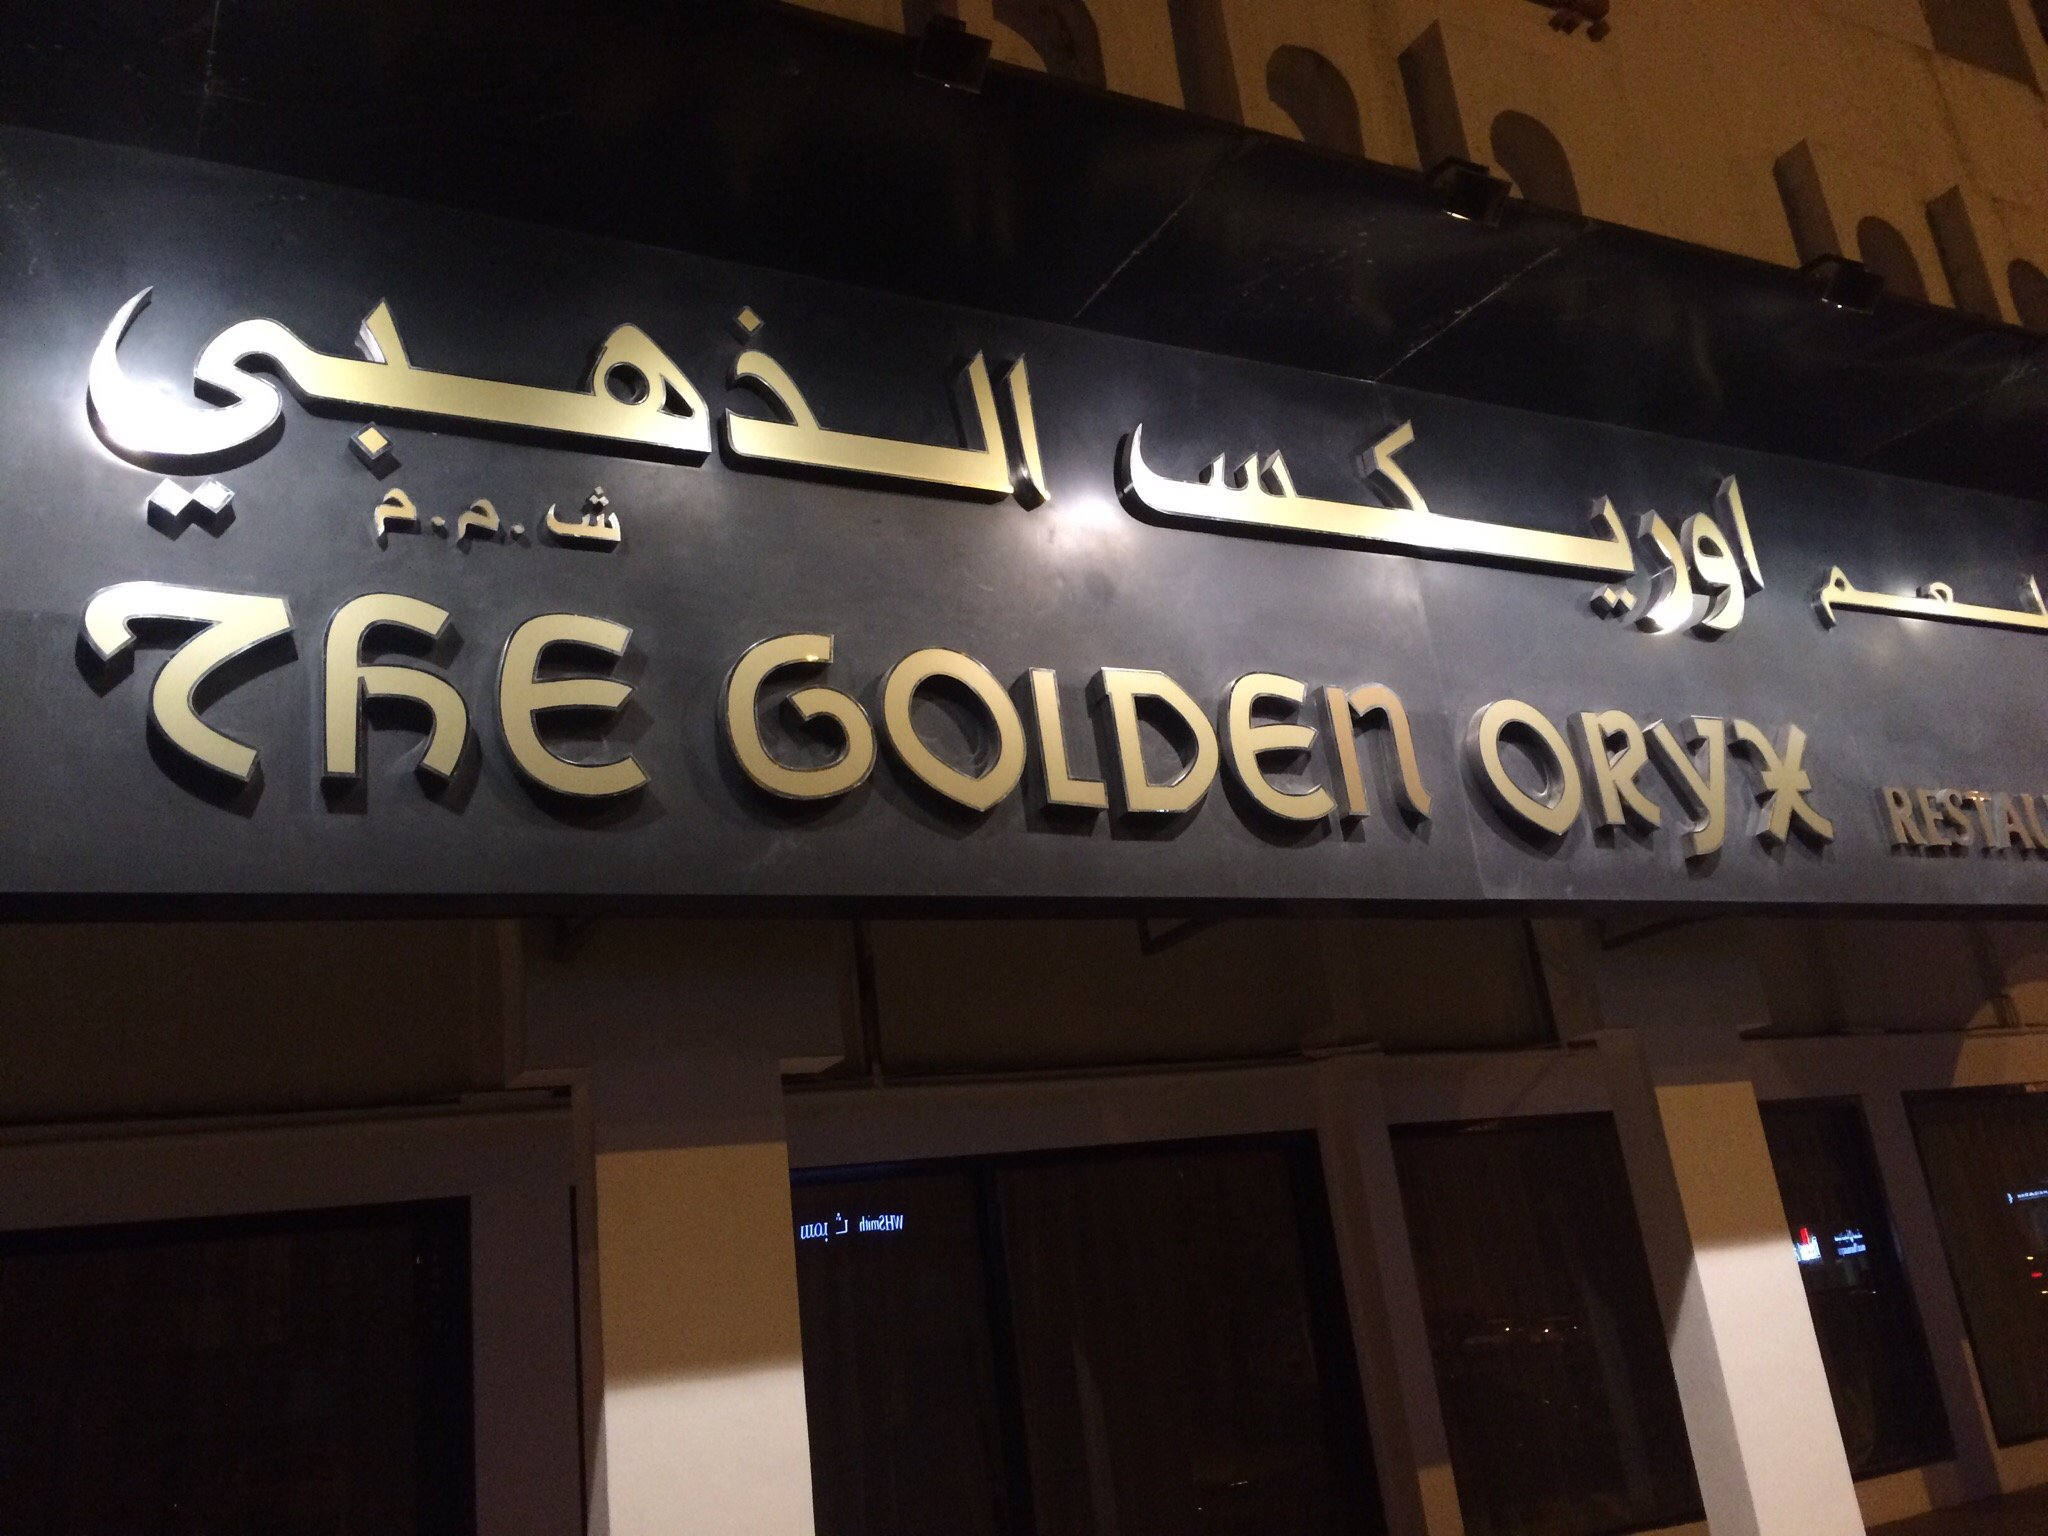 The Golden Oryx